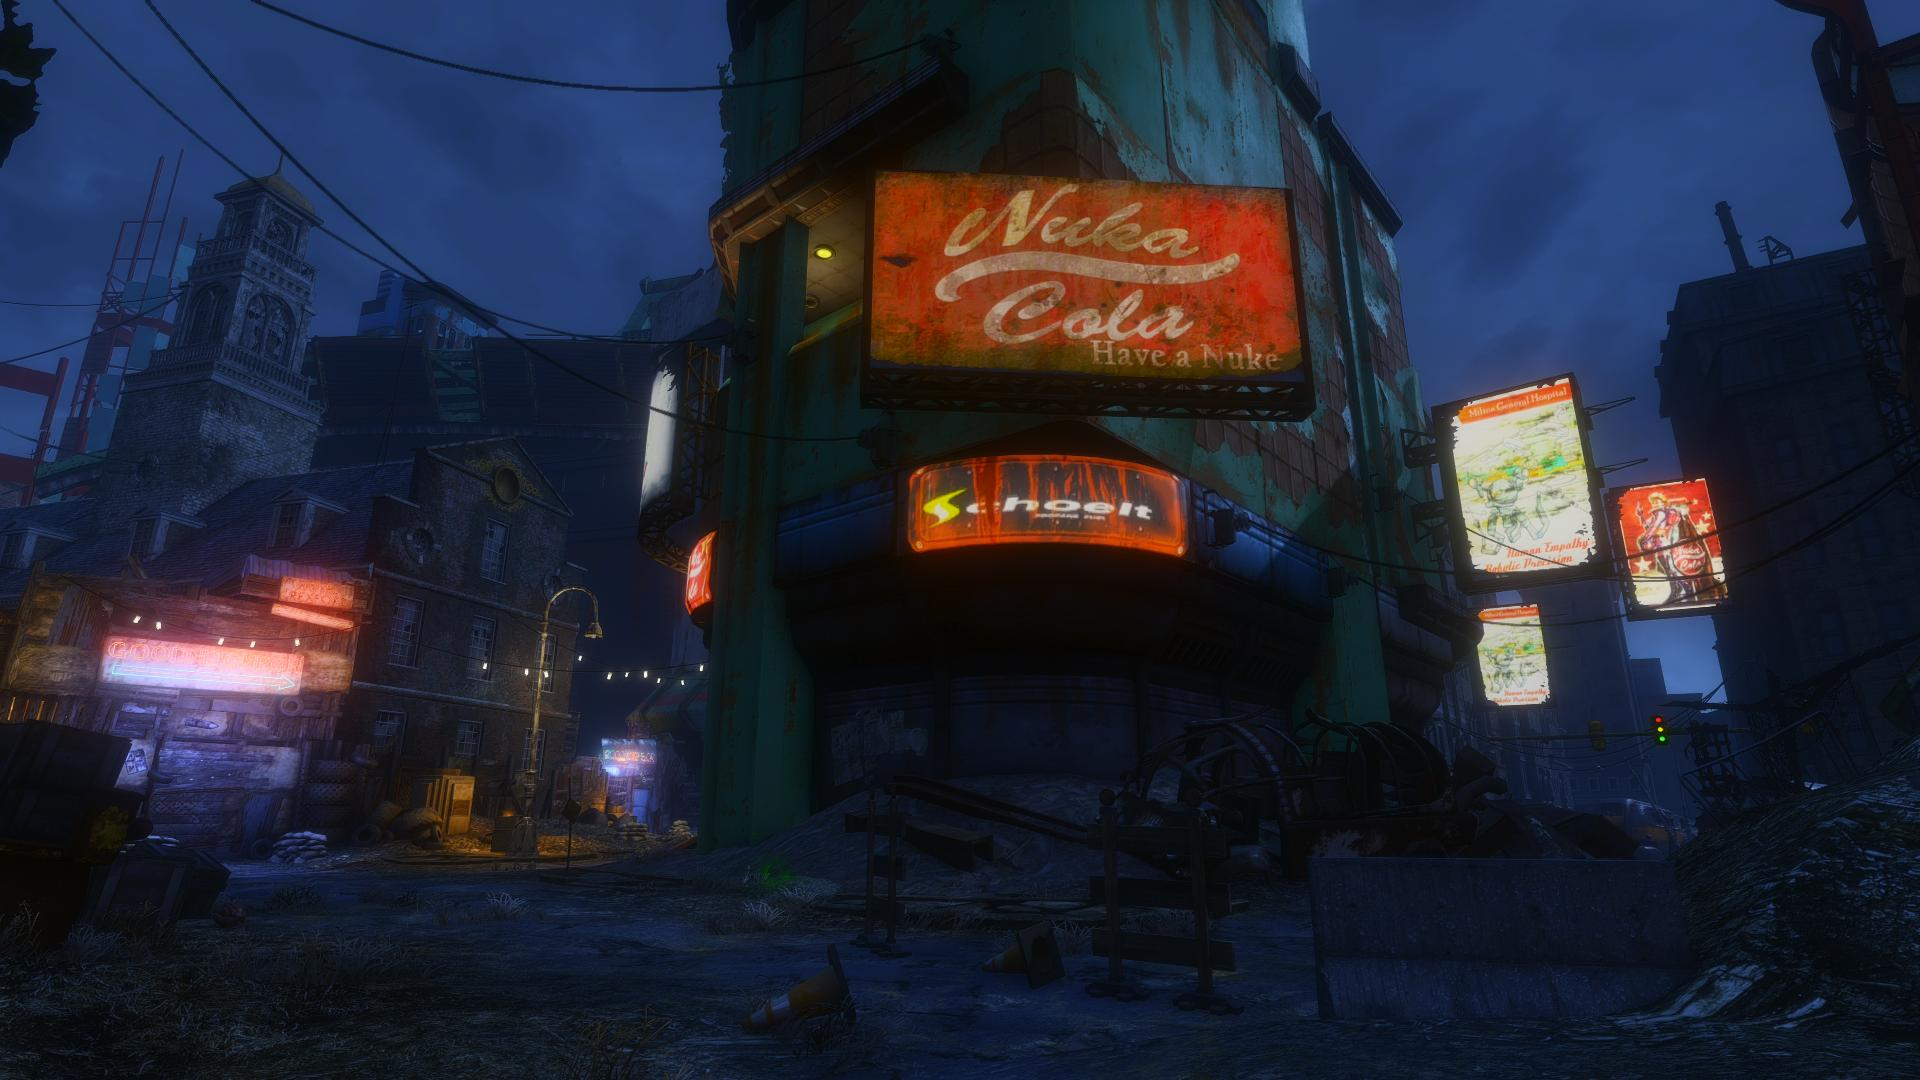 How To Use Wall Lights Fallout 4 : Illuminated Billboards - Lighting at Fallout 4 Nexus - Mods and community